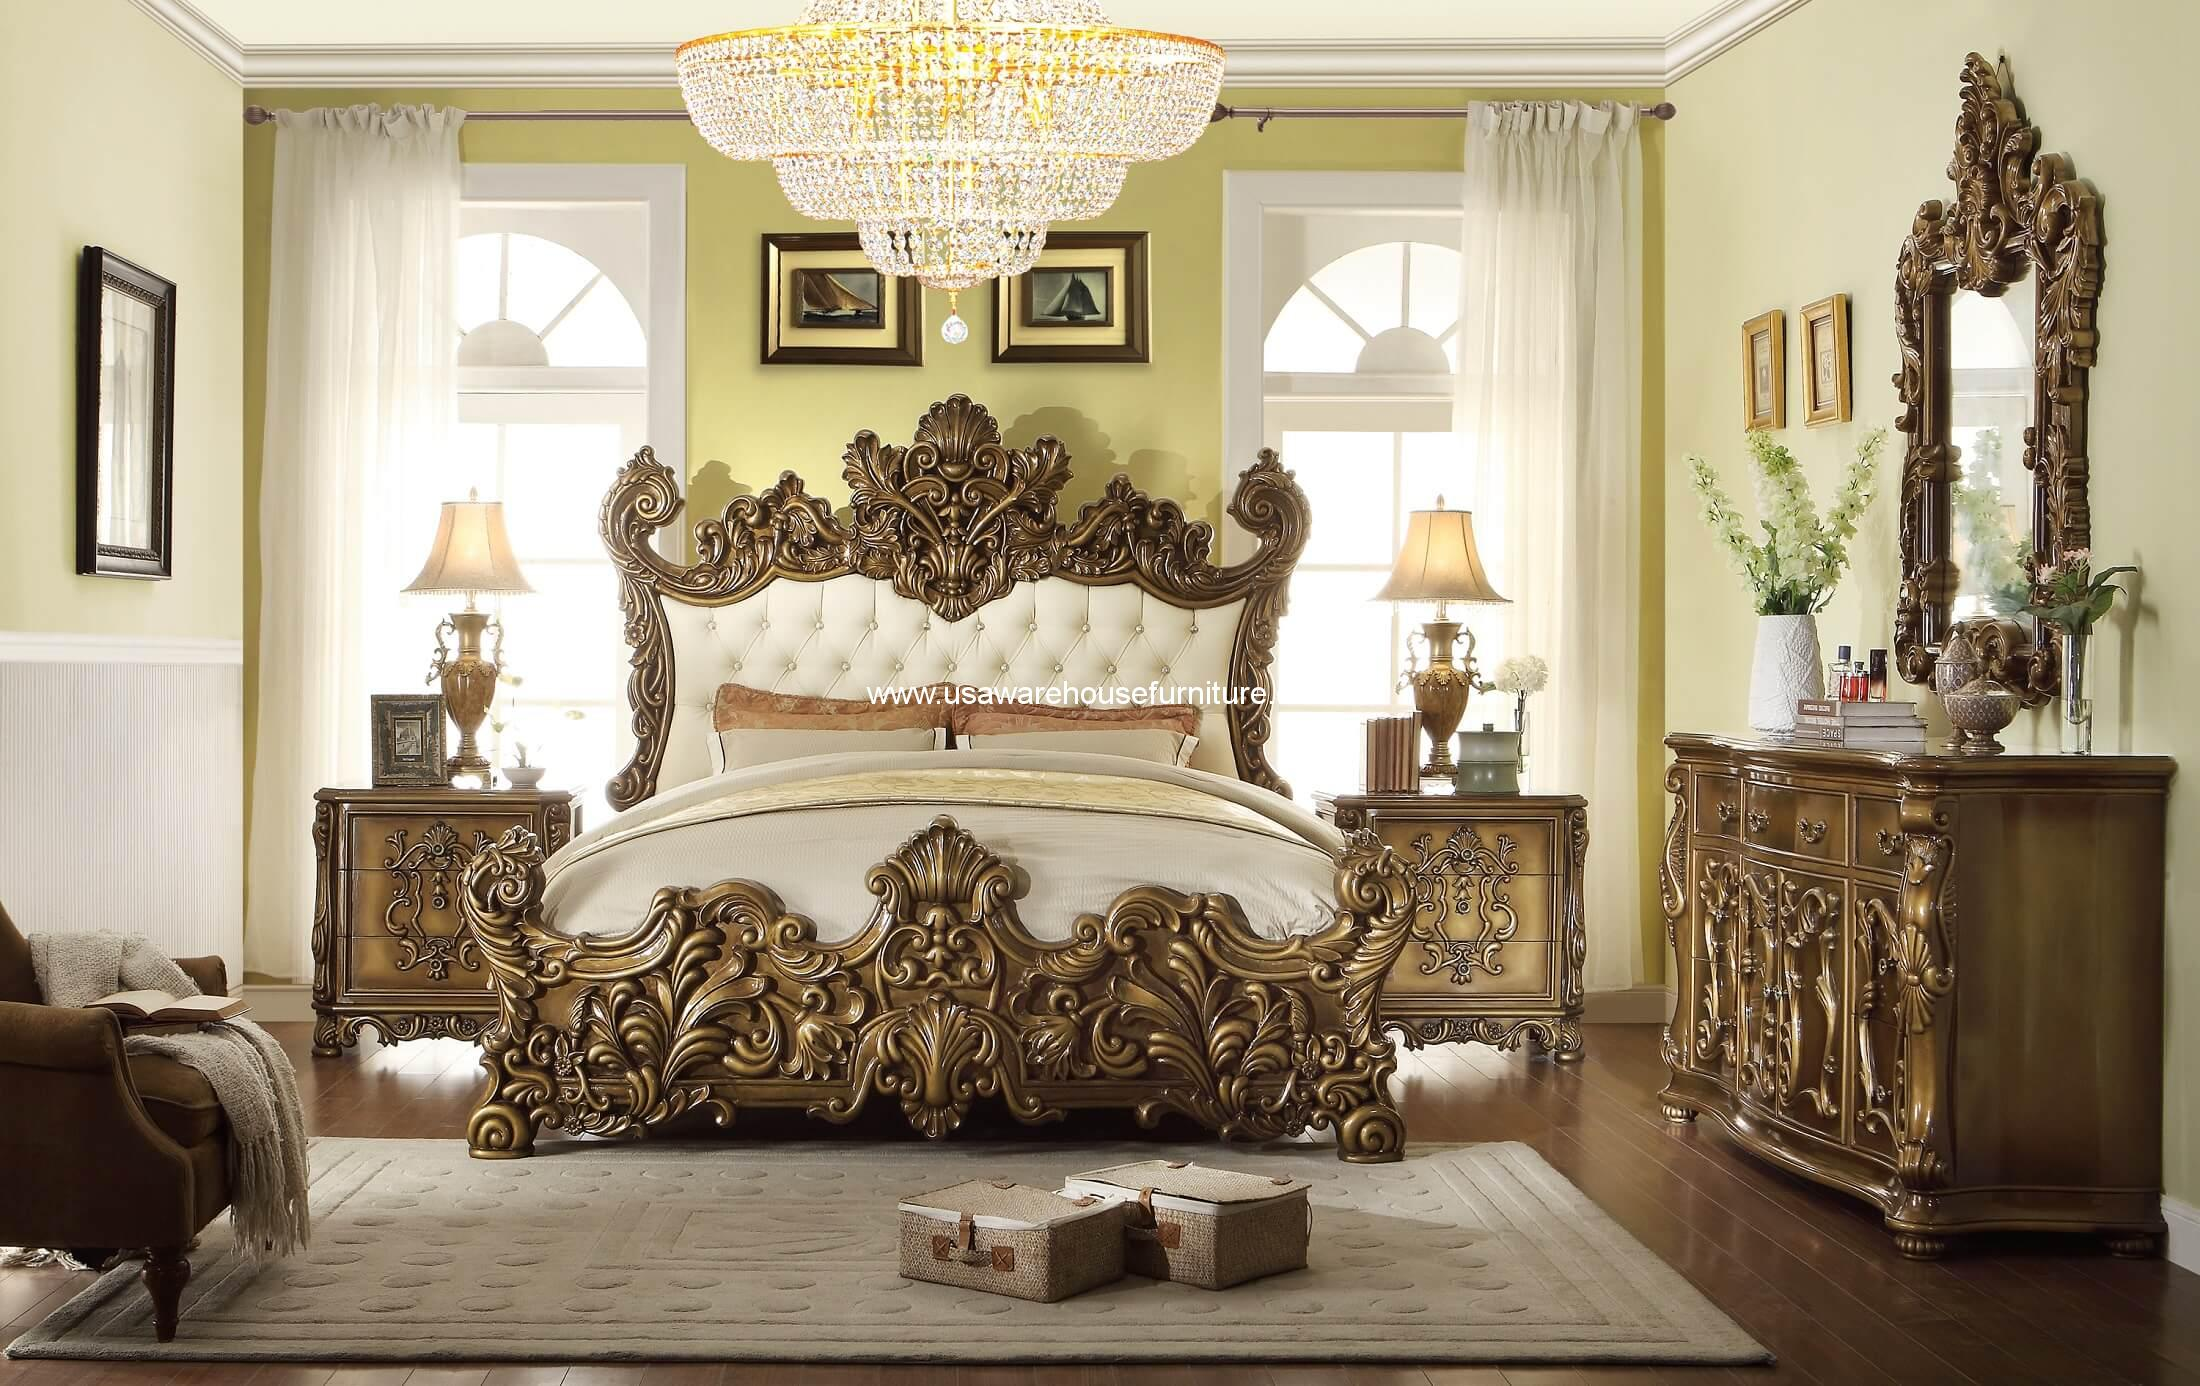 Homey Design HD 8008 5Pc Golden Royal Palace Bedroom Set  : Homey Design HD 8008 5Pc Golden Royal Palace Bedroom Set from www.usawarehousefurniture.com size 2200 x 1386 jpeg 356kB